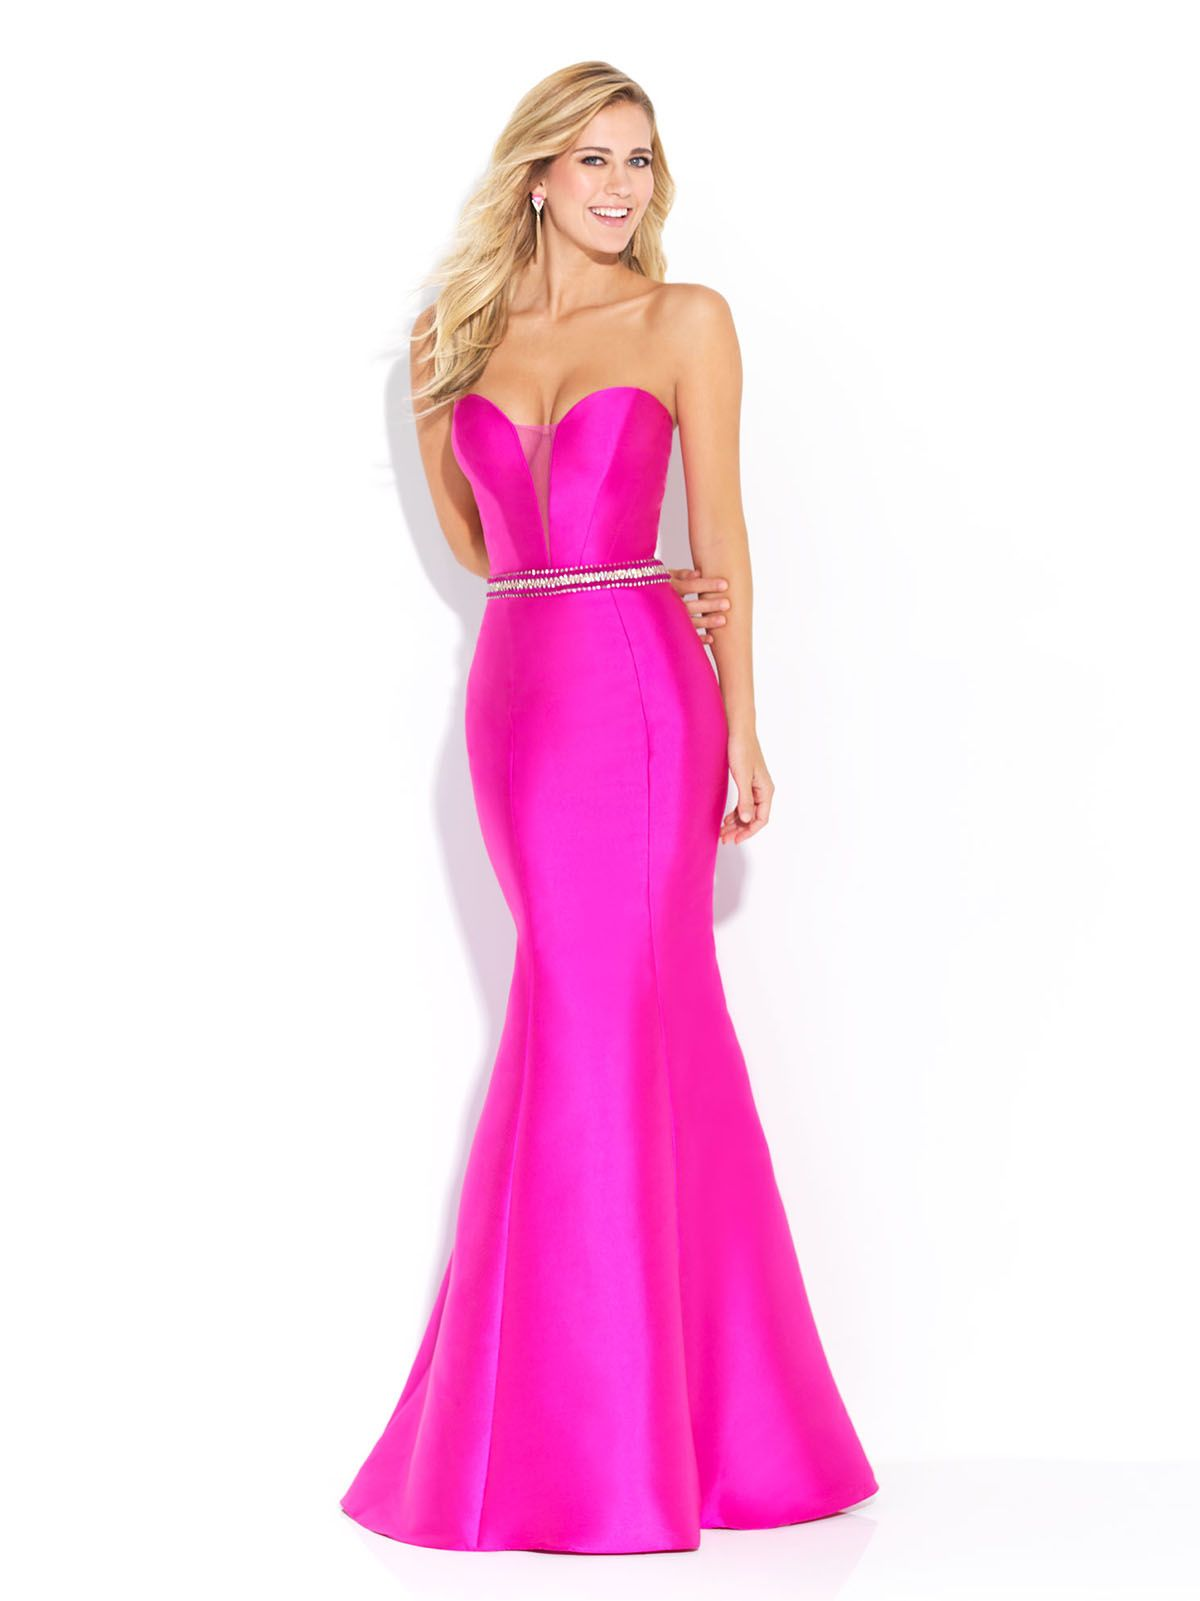 Madison James 17-225 | Prom, Prom dress stores and Formal gowns